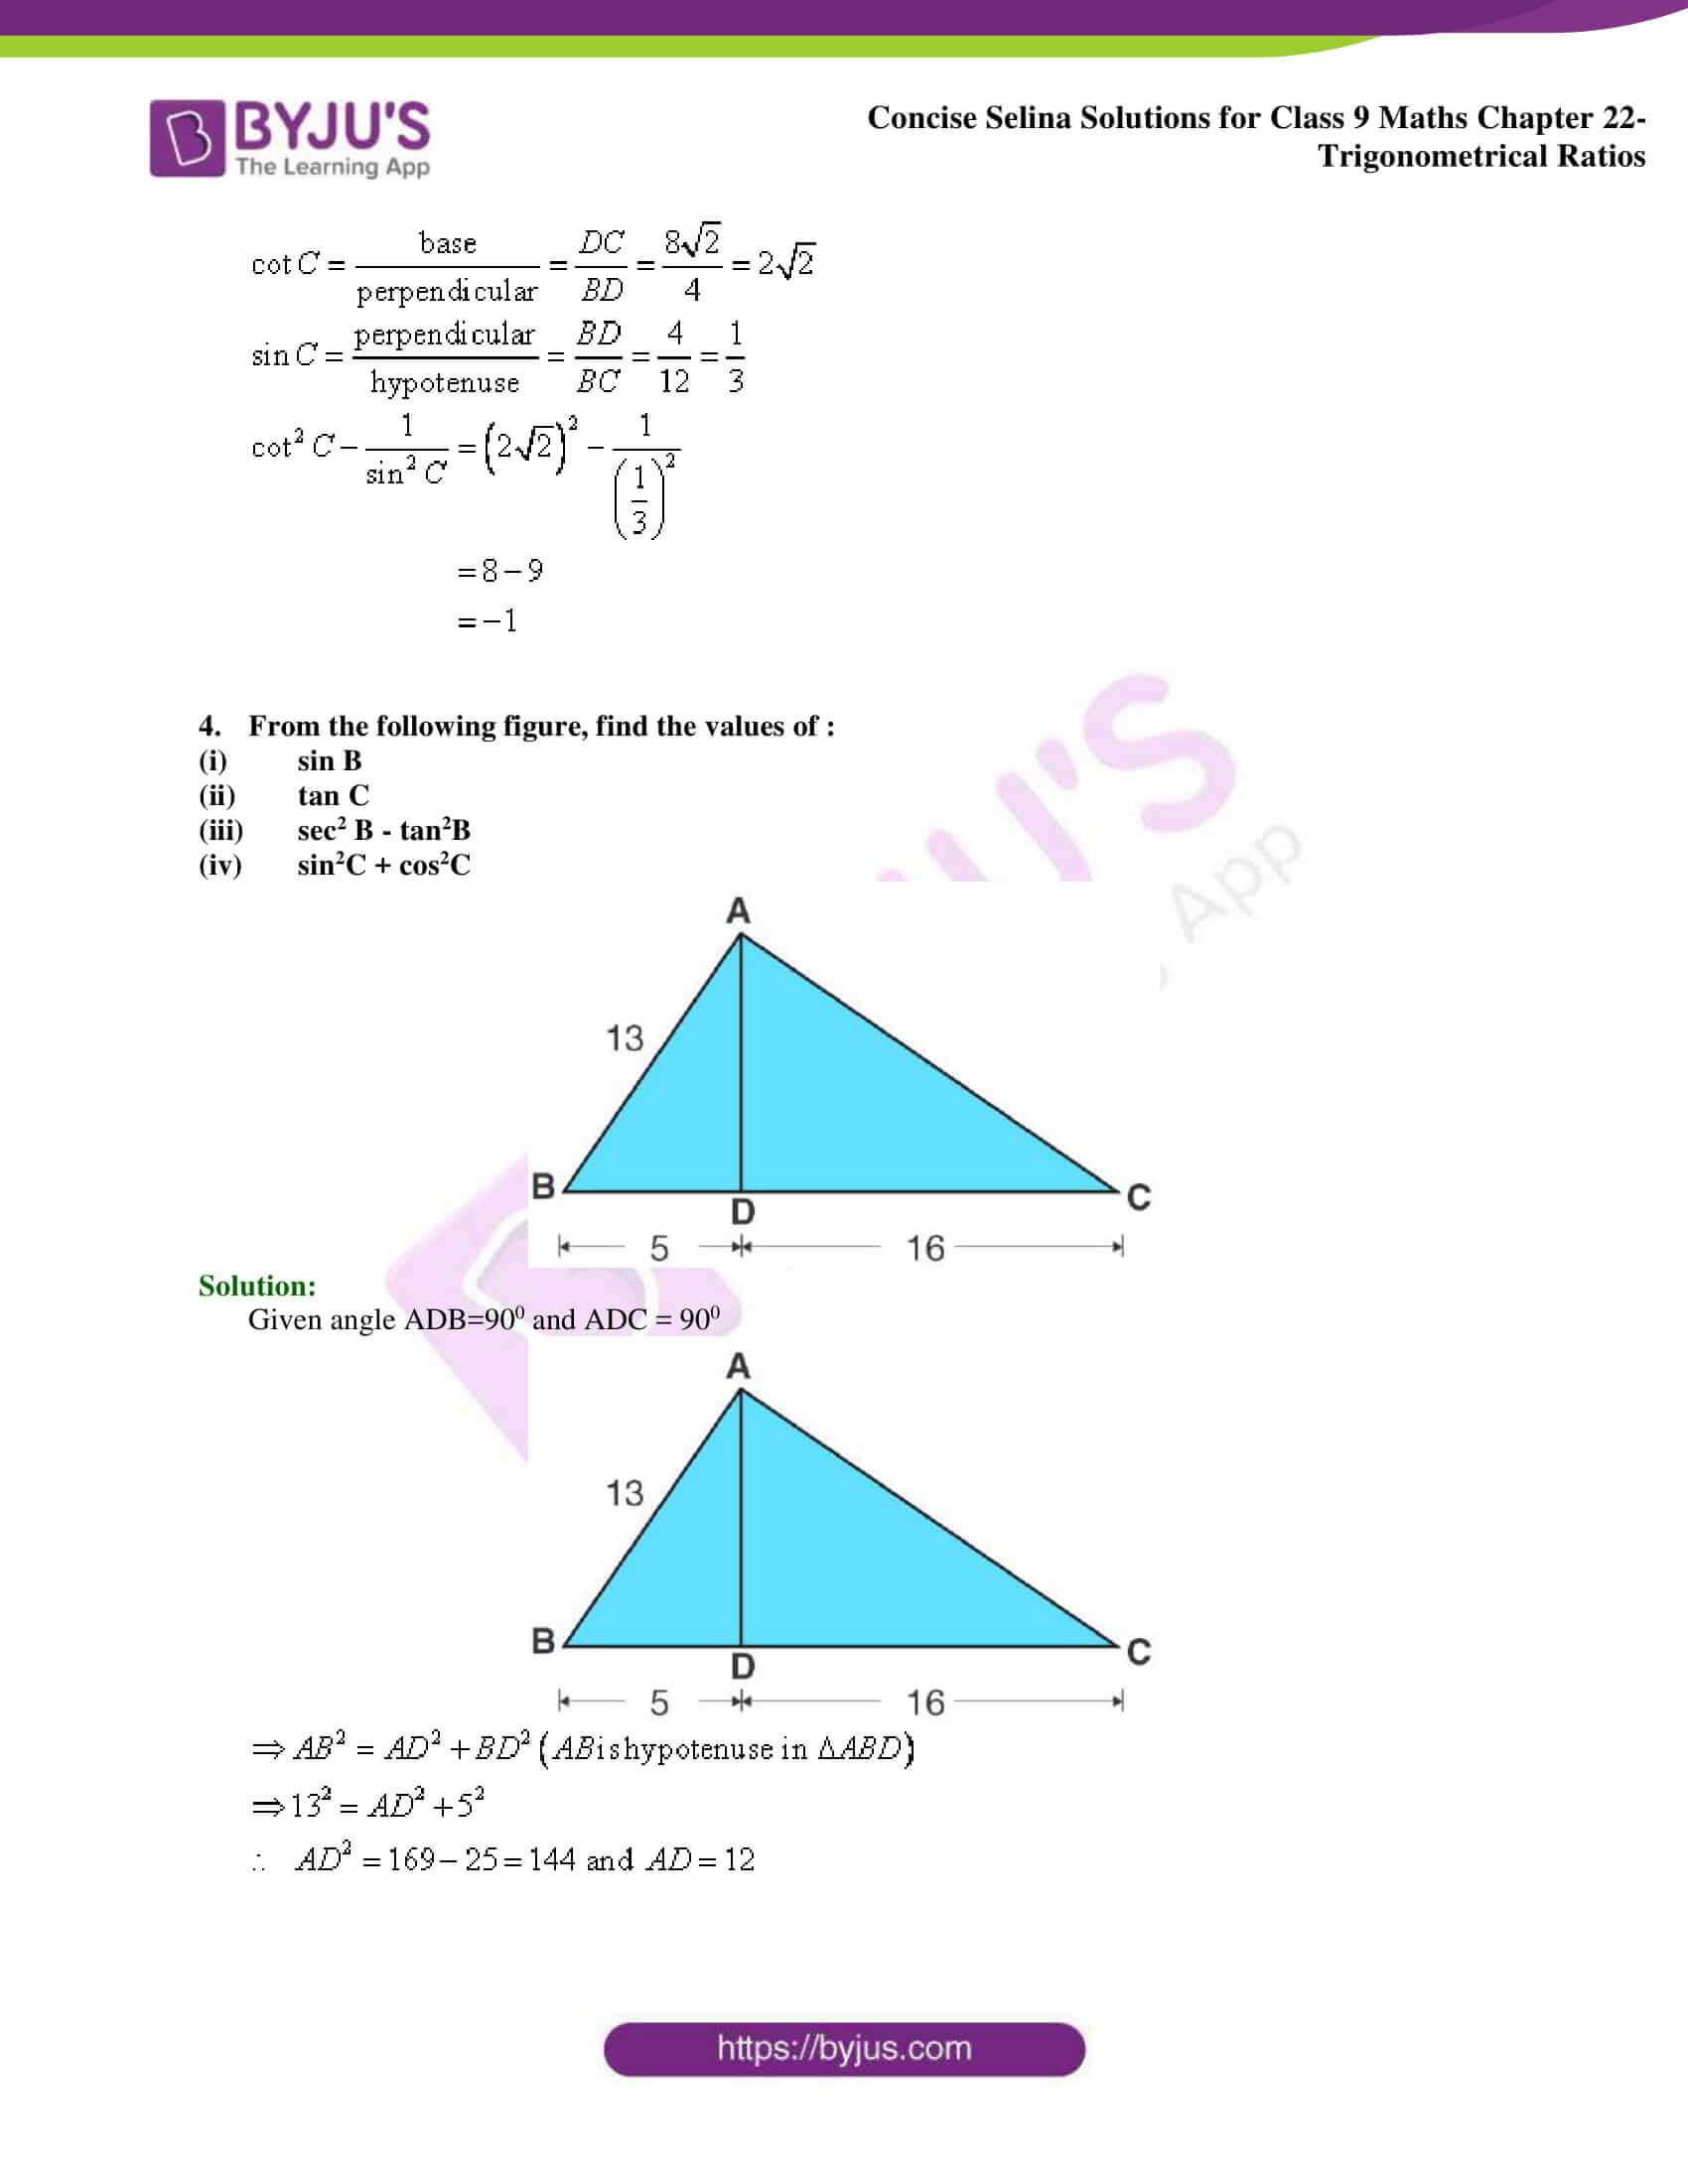 Concise Selina Solutions Class 9 Maths Chapter 22 Trigonometrical Ratios part 05